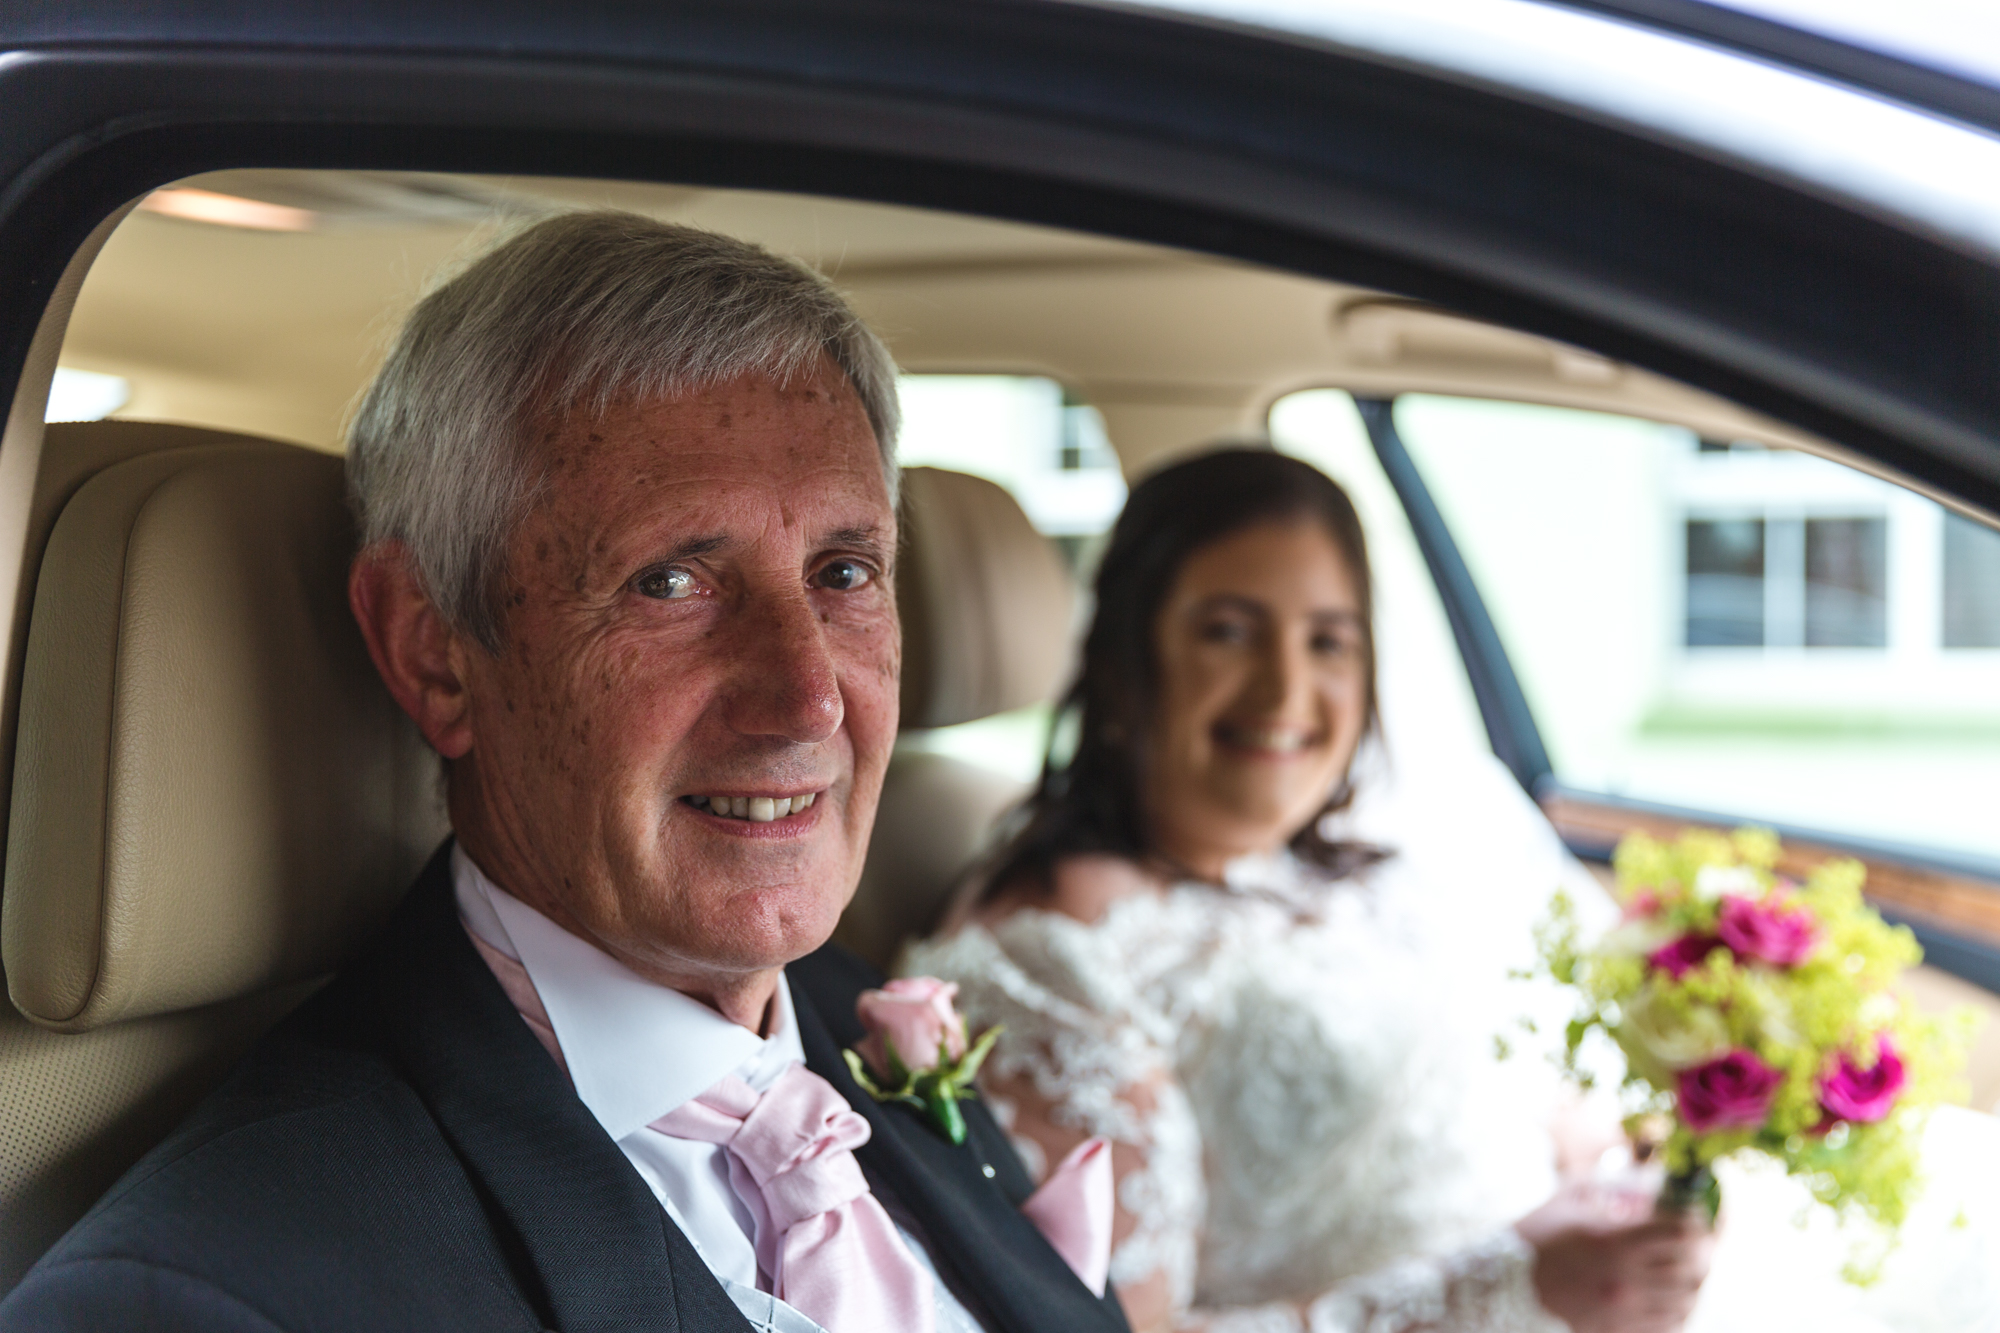 South Wales wedding photographer covering Caerphilly, Cardiff and surrounding areas